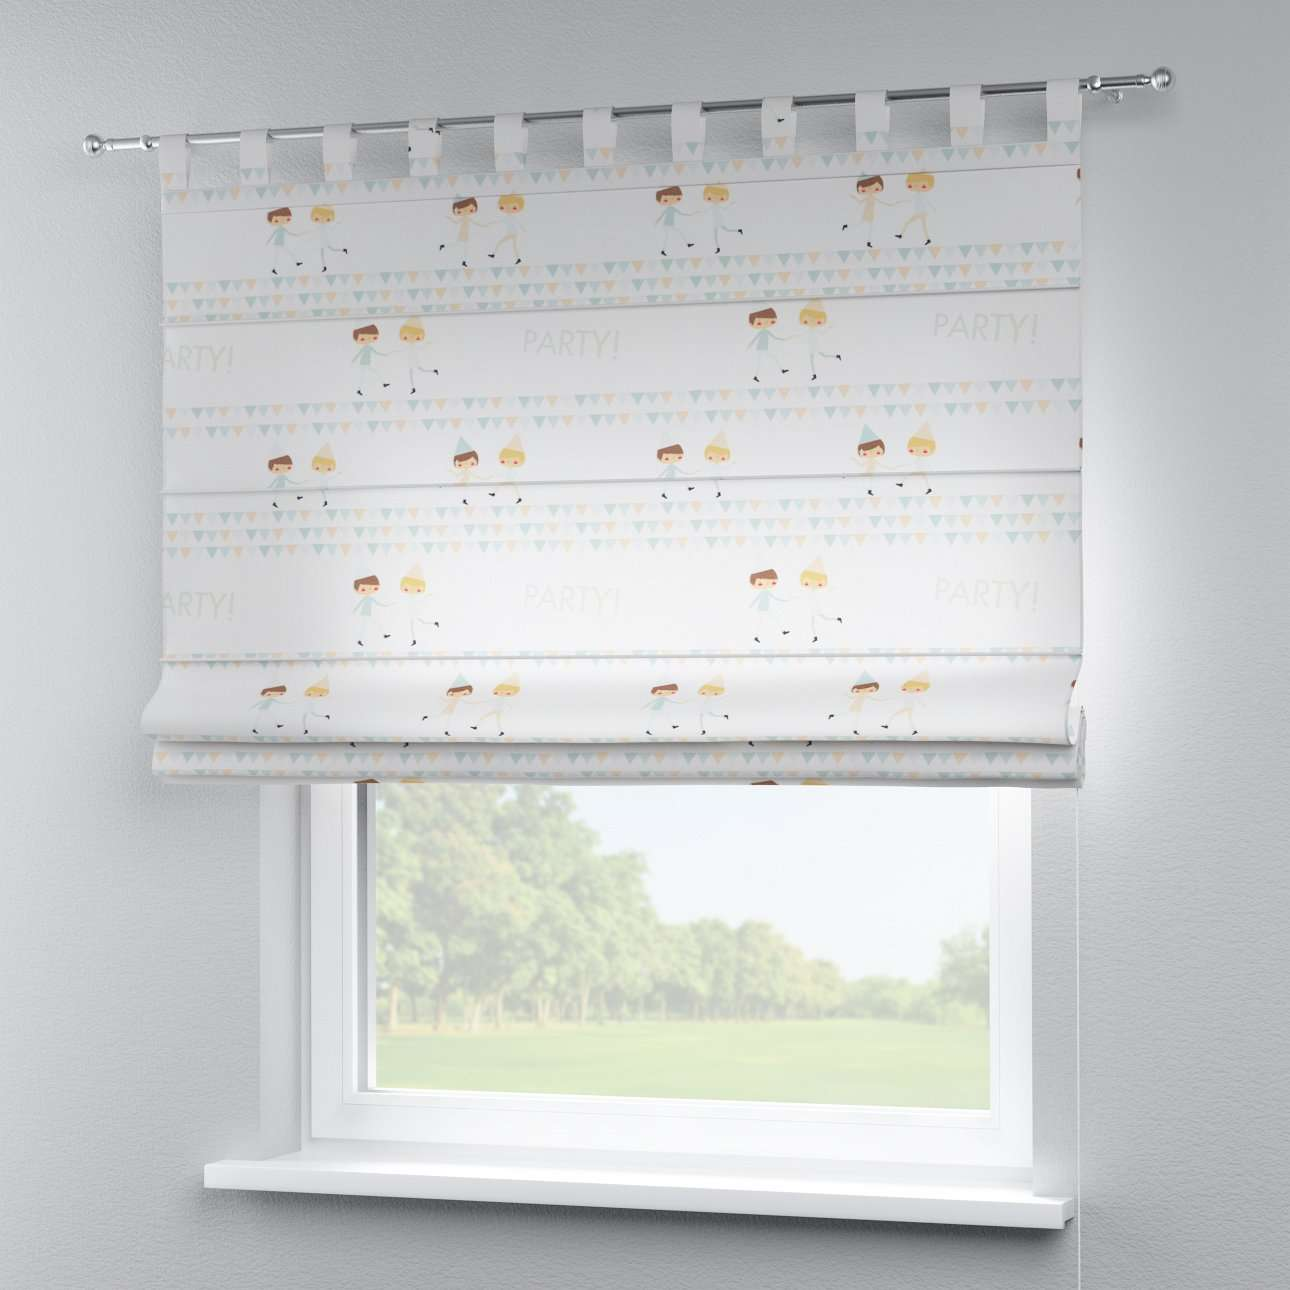 Verona tab top roman blind 80 x 170 cm (31.5 x 67 inch) in collection Apanona, fabric: 151-01